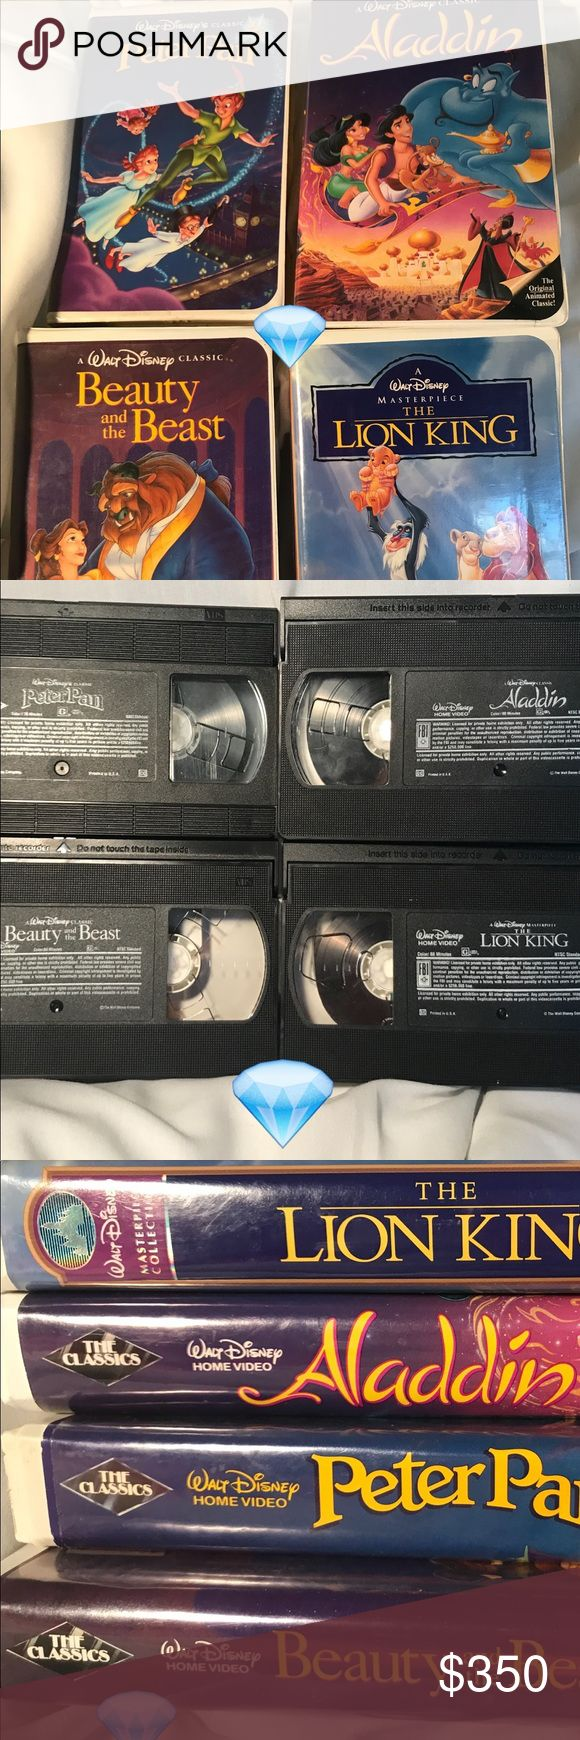 "Disney VHS BLack Diamond set of 4 Includes ""Beauty and the Beast"", ""Aladdin"", and ""Peter Pan"". ""The Lion King"" is not black diamond, but rather Disney Masterpiece. Other"